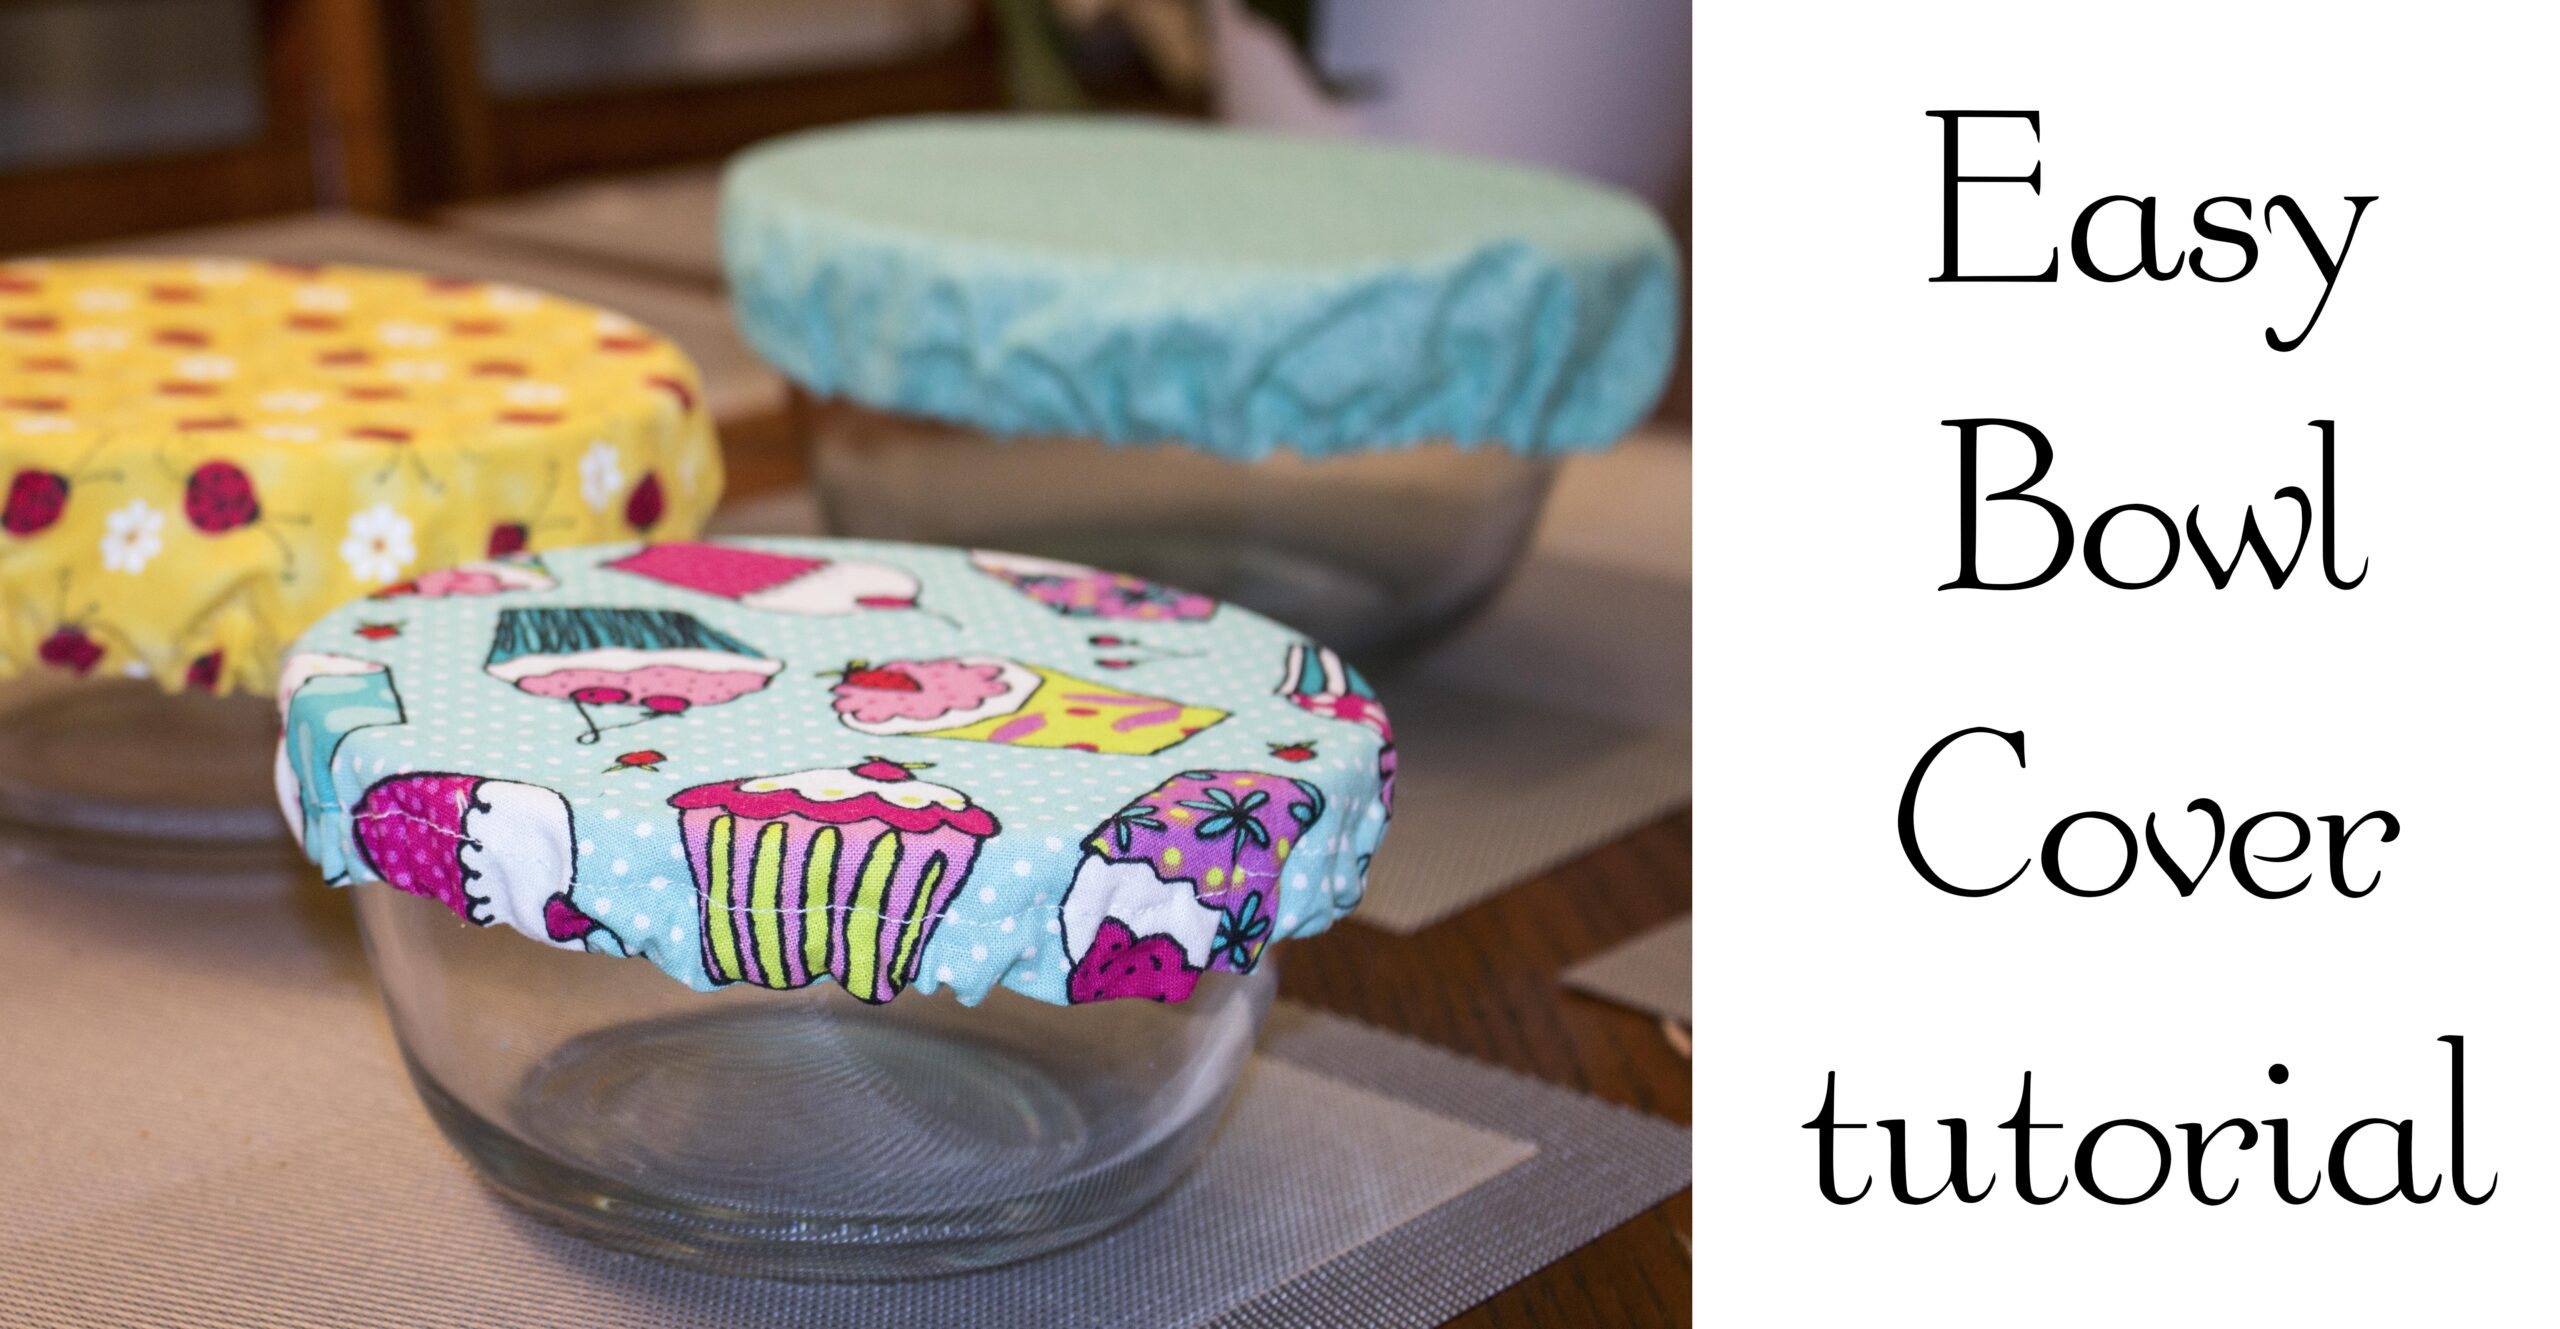 Easy fancy bowl covers!